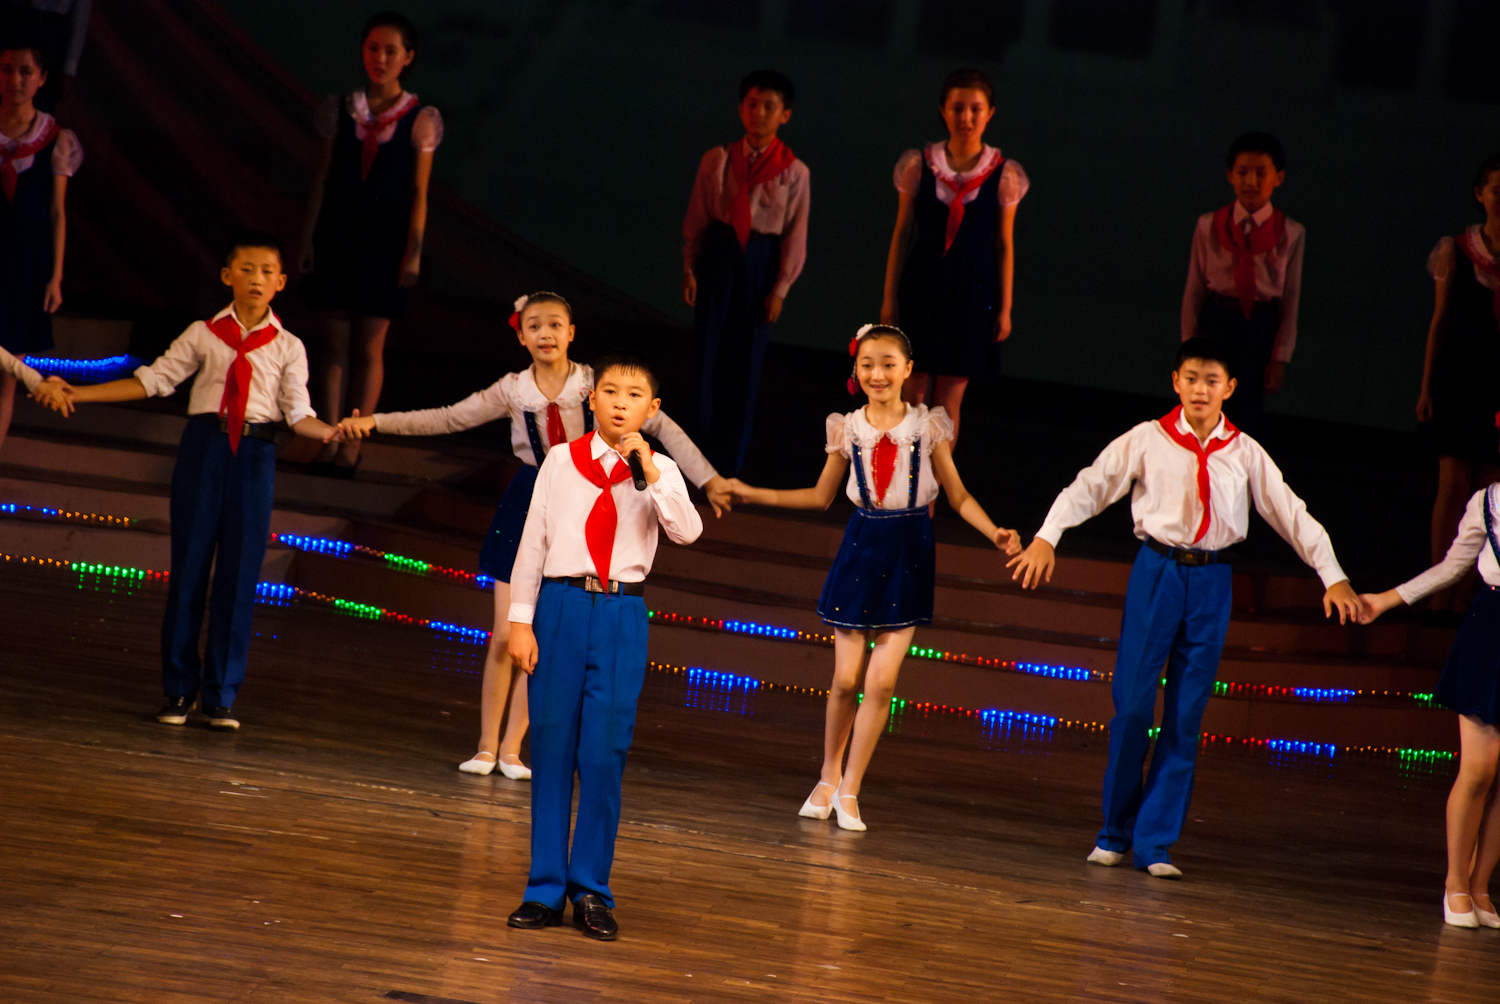 After the tour of the Palace, we were treated with an hour-long concert. North Korean kids and really talented and considering that they can't leave the country to tour, it's good that we come to them...